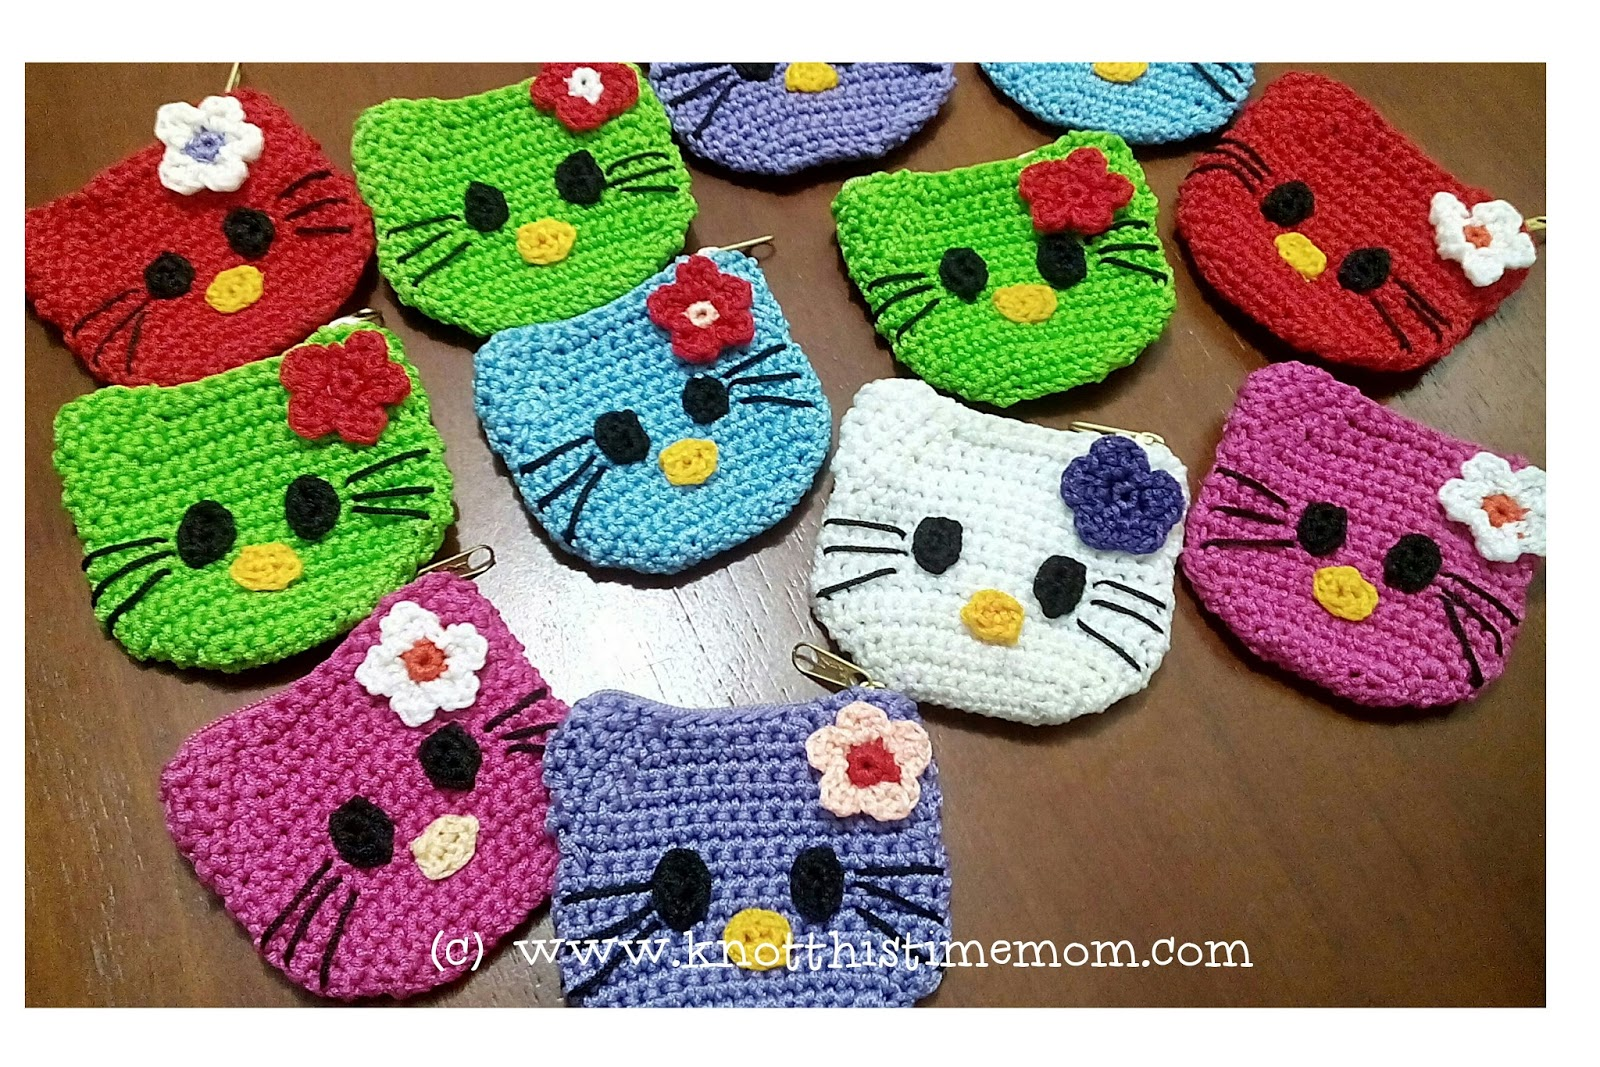 Crochet Purse Patterns Hello Kitty : Knot This Time Mom!: Hello Kitty Change Purse